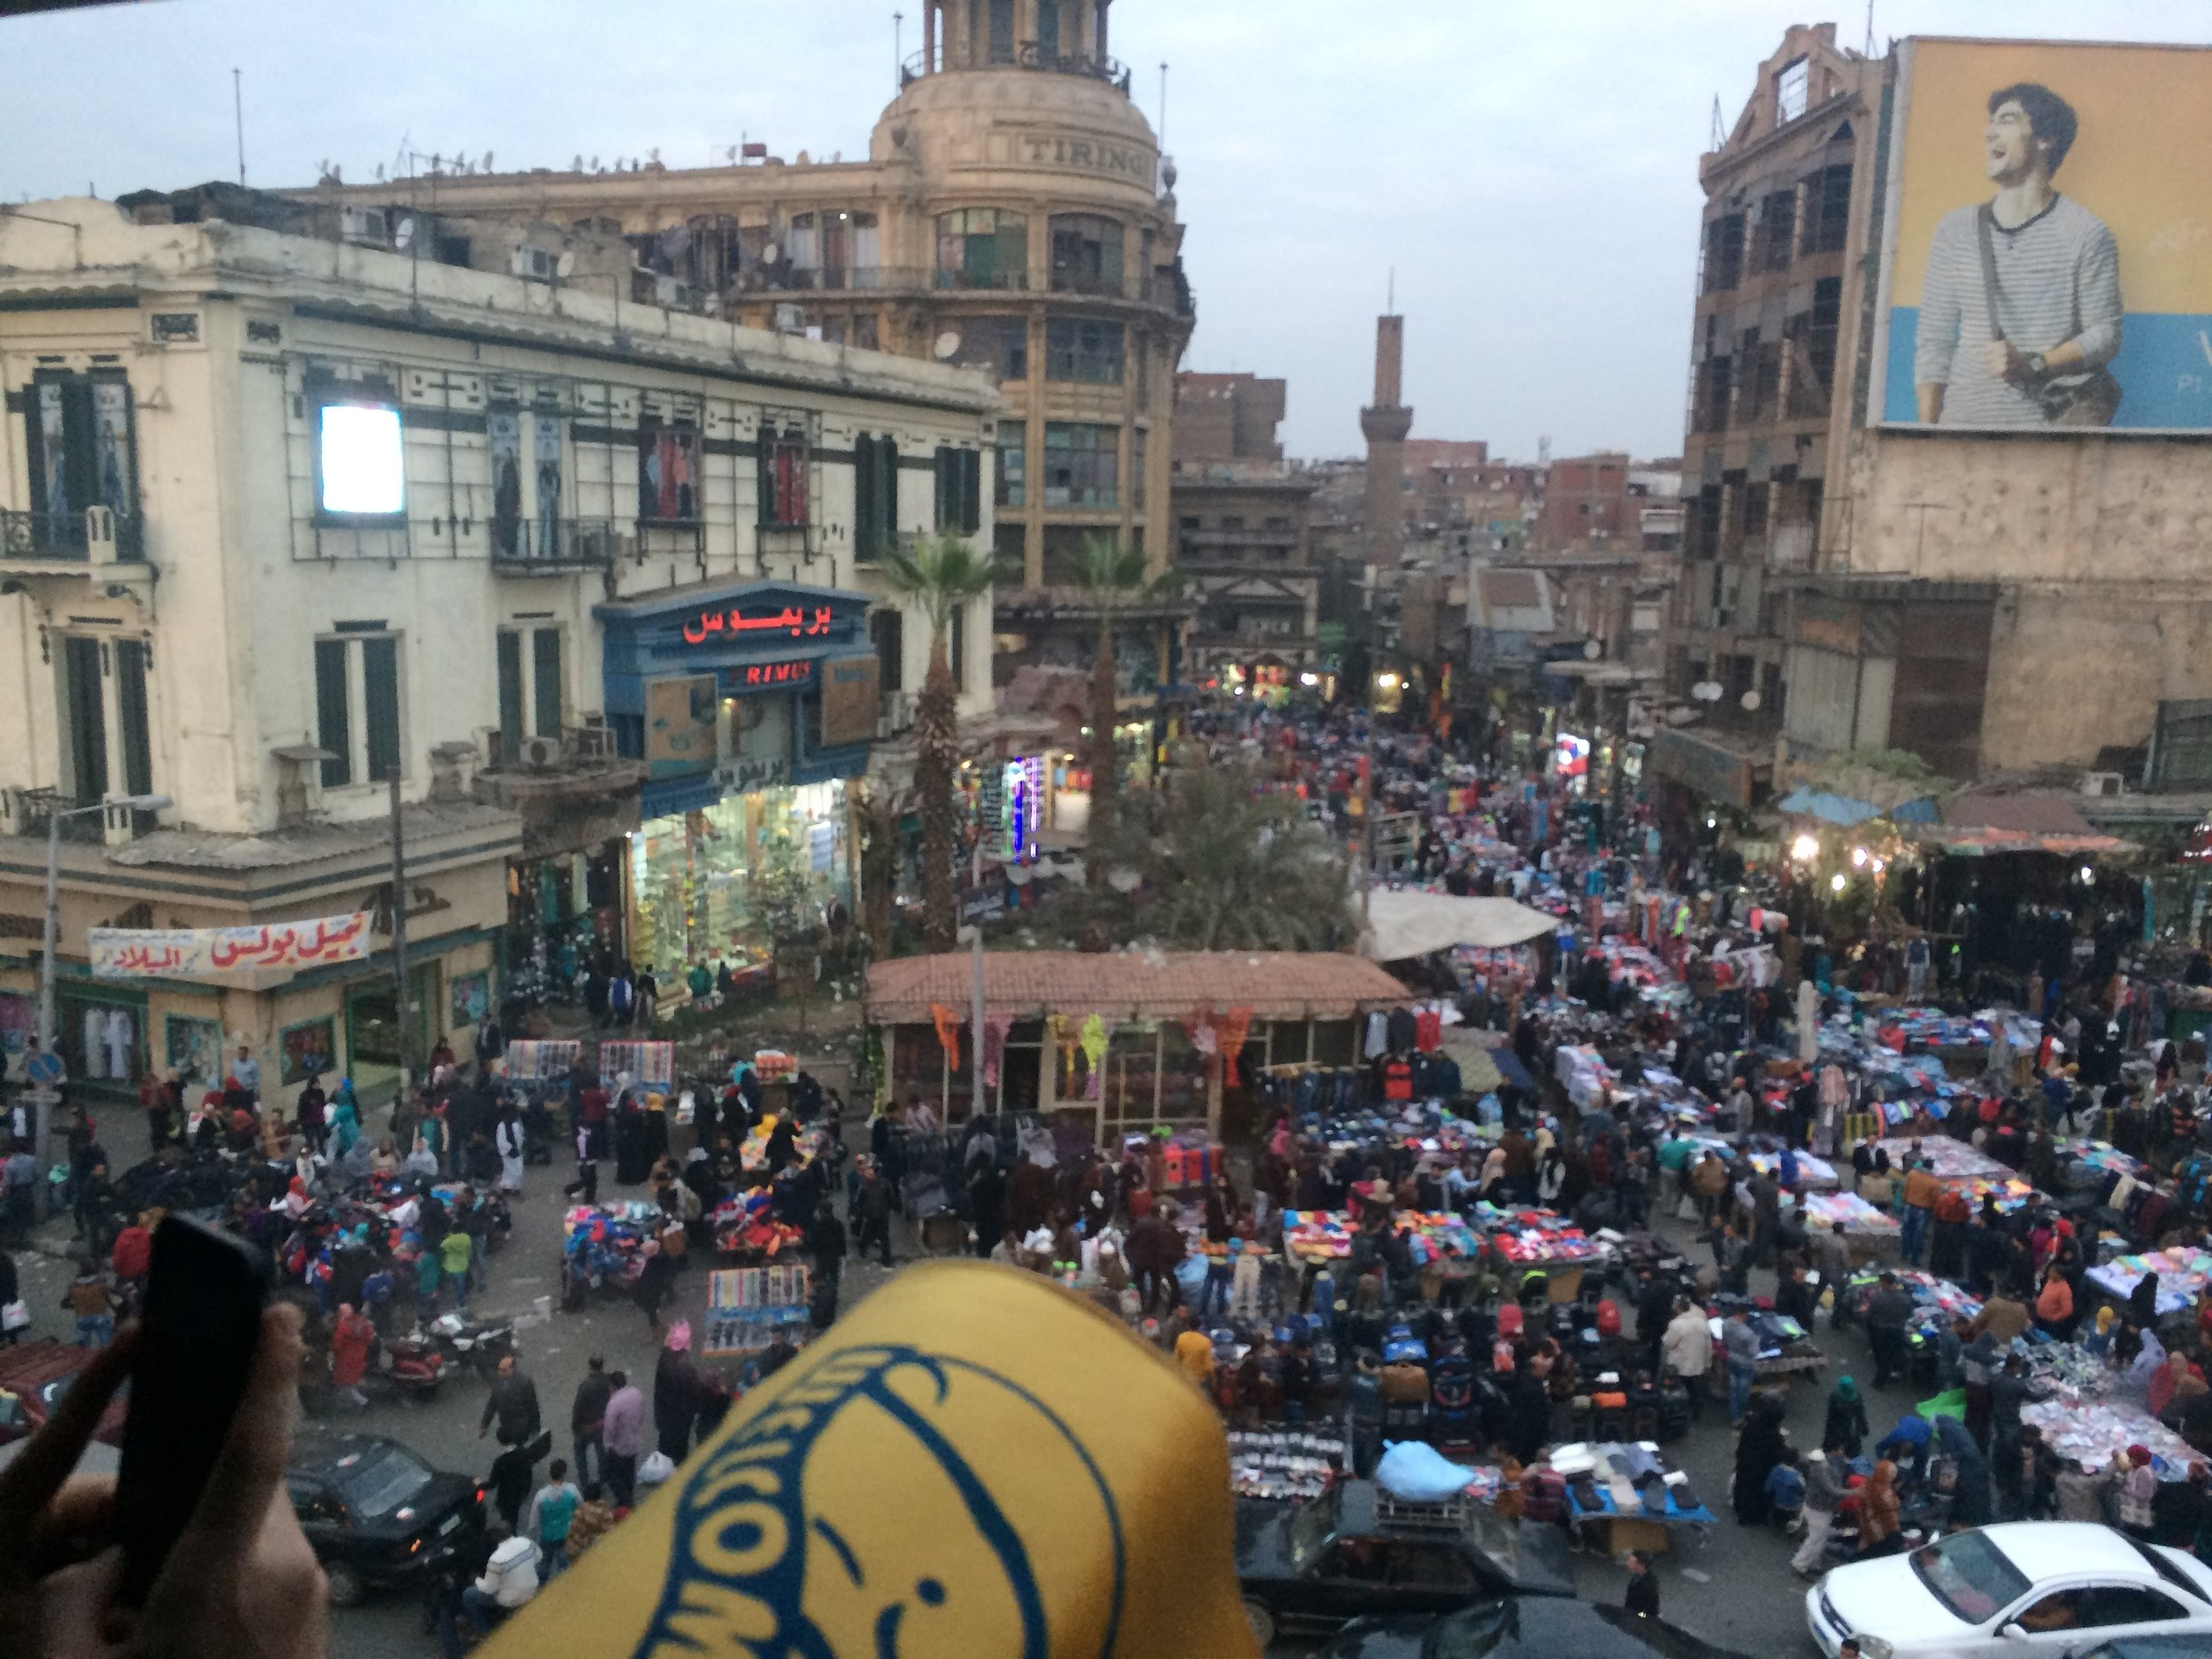 View of Bazar from above